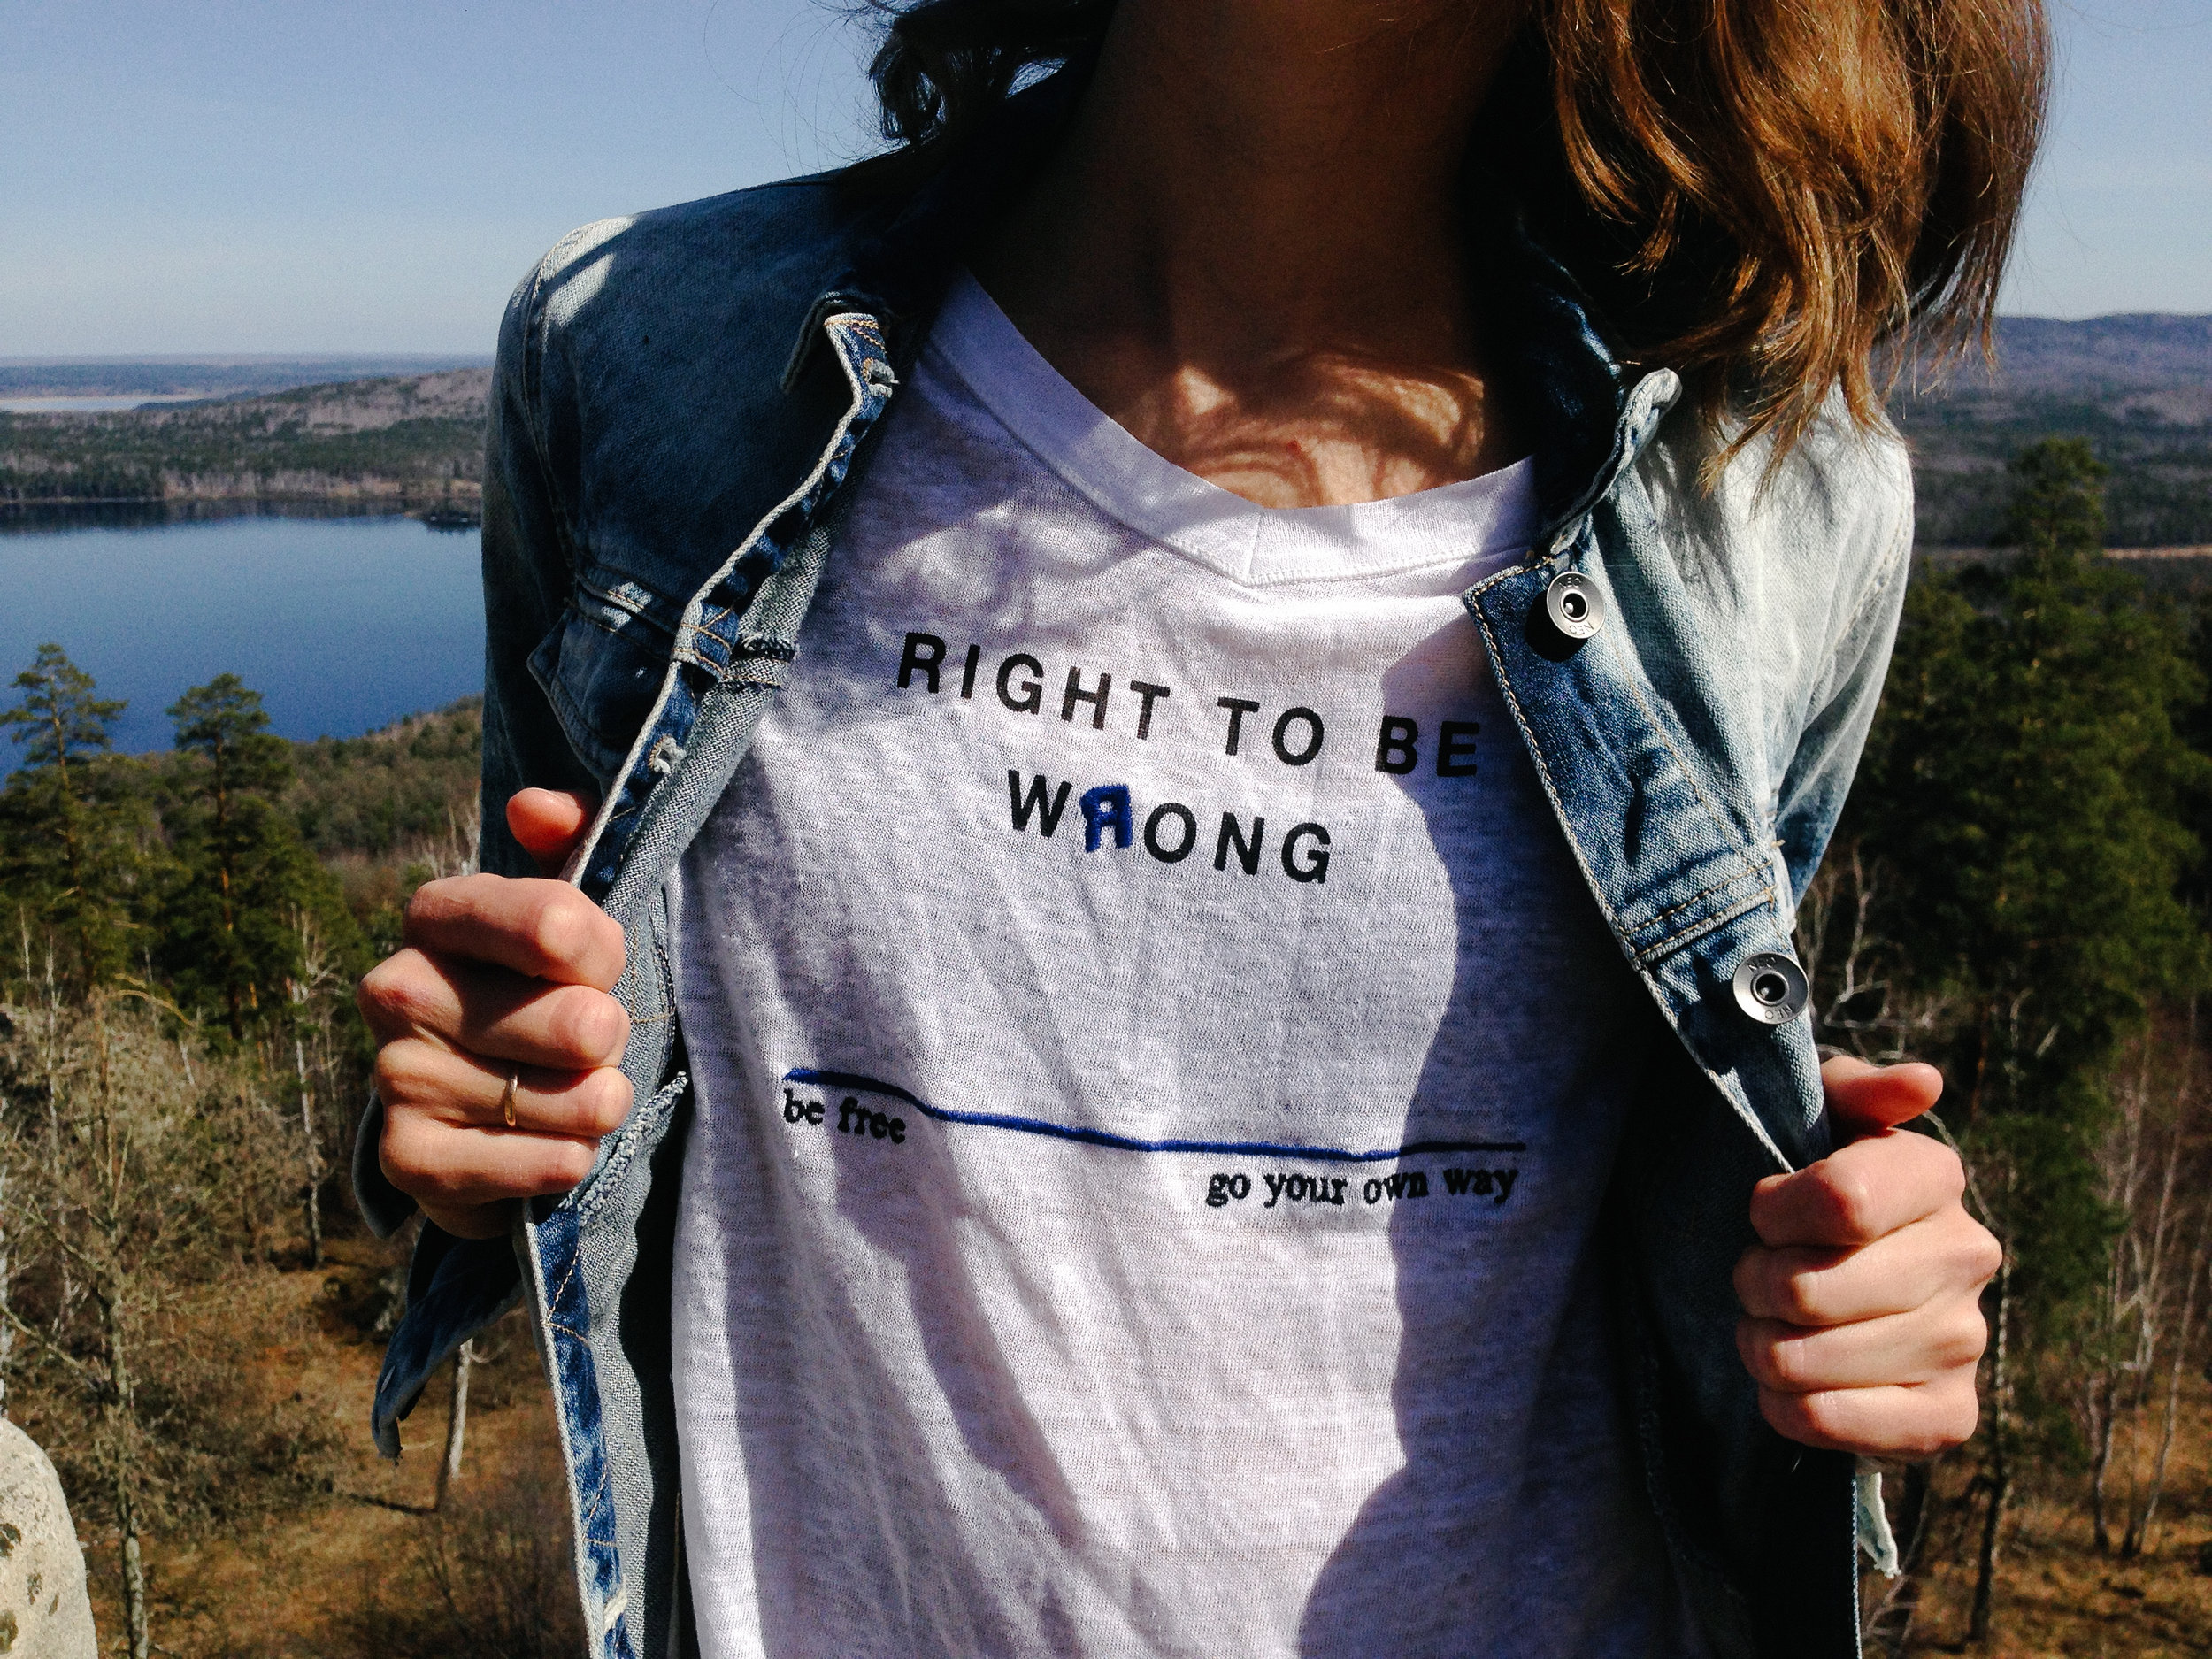 3. Prove yourself wrong - And create the version of you that you LOVE